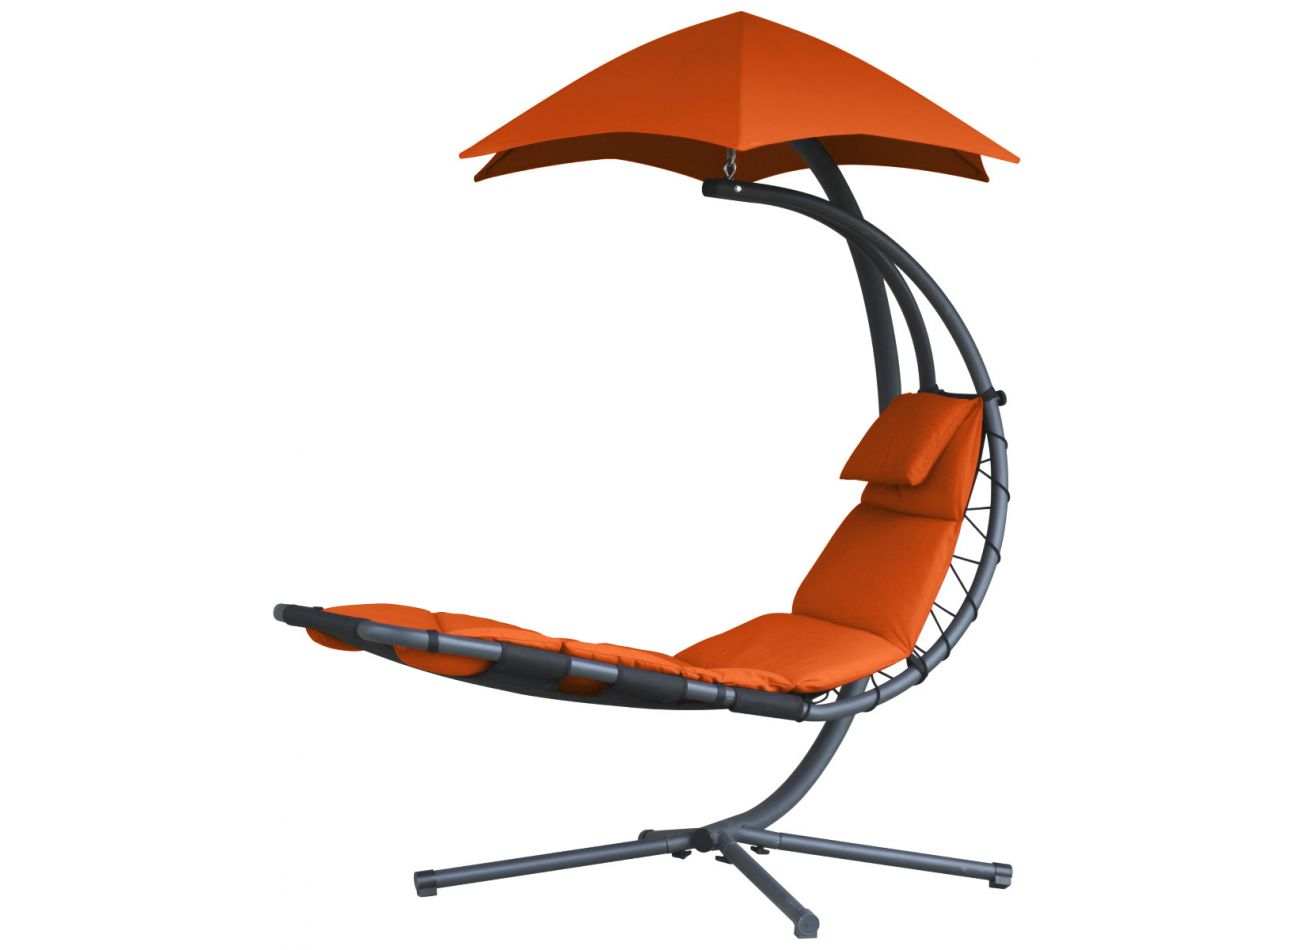 Original 1 Person Dream Chair Orange